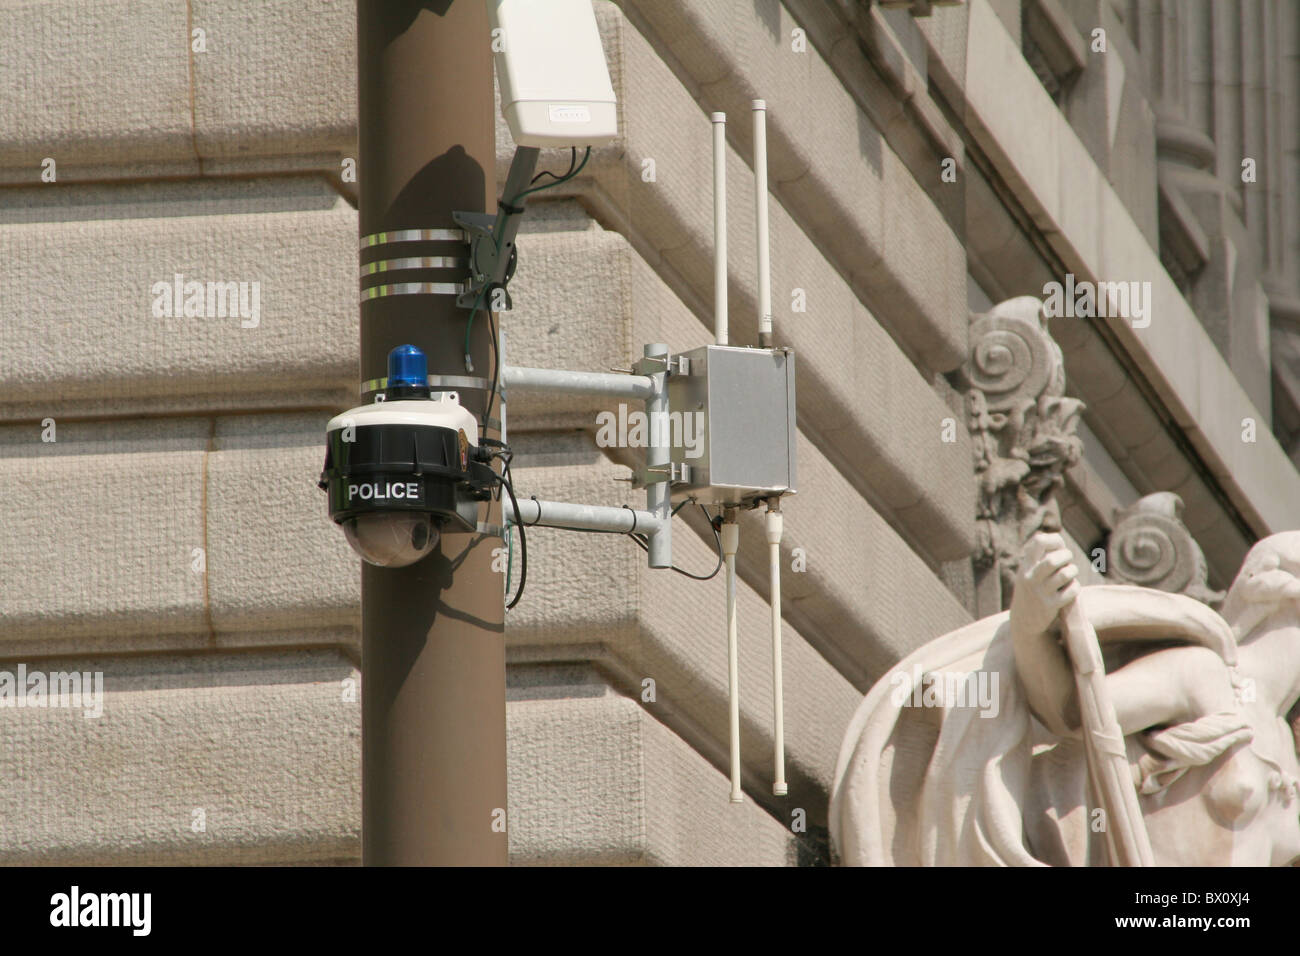 Police Security Camera with Antenna. Cleveland, Ohio, USA. Big Brother is watching. - Stock Image